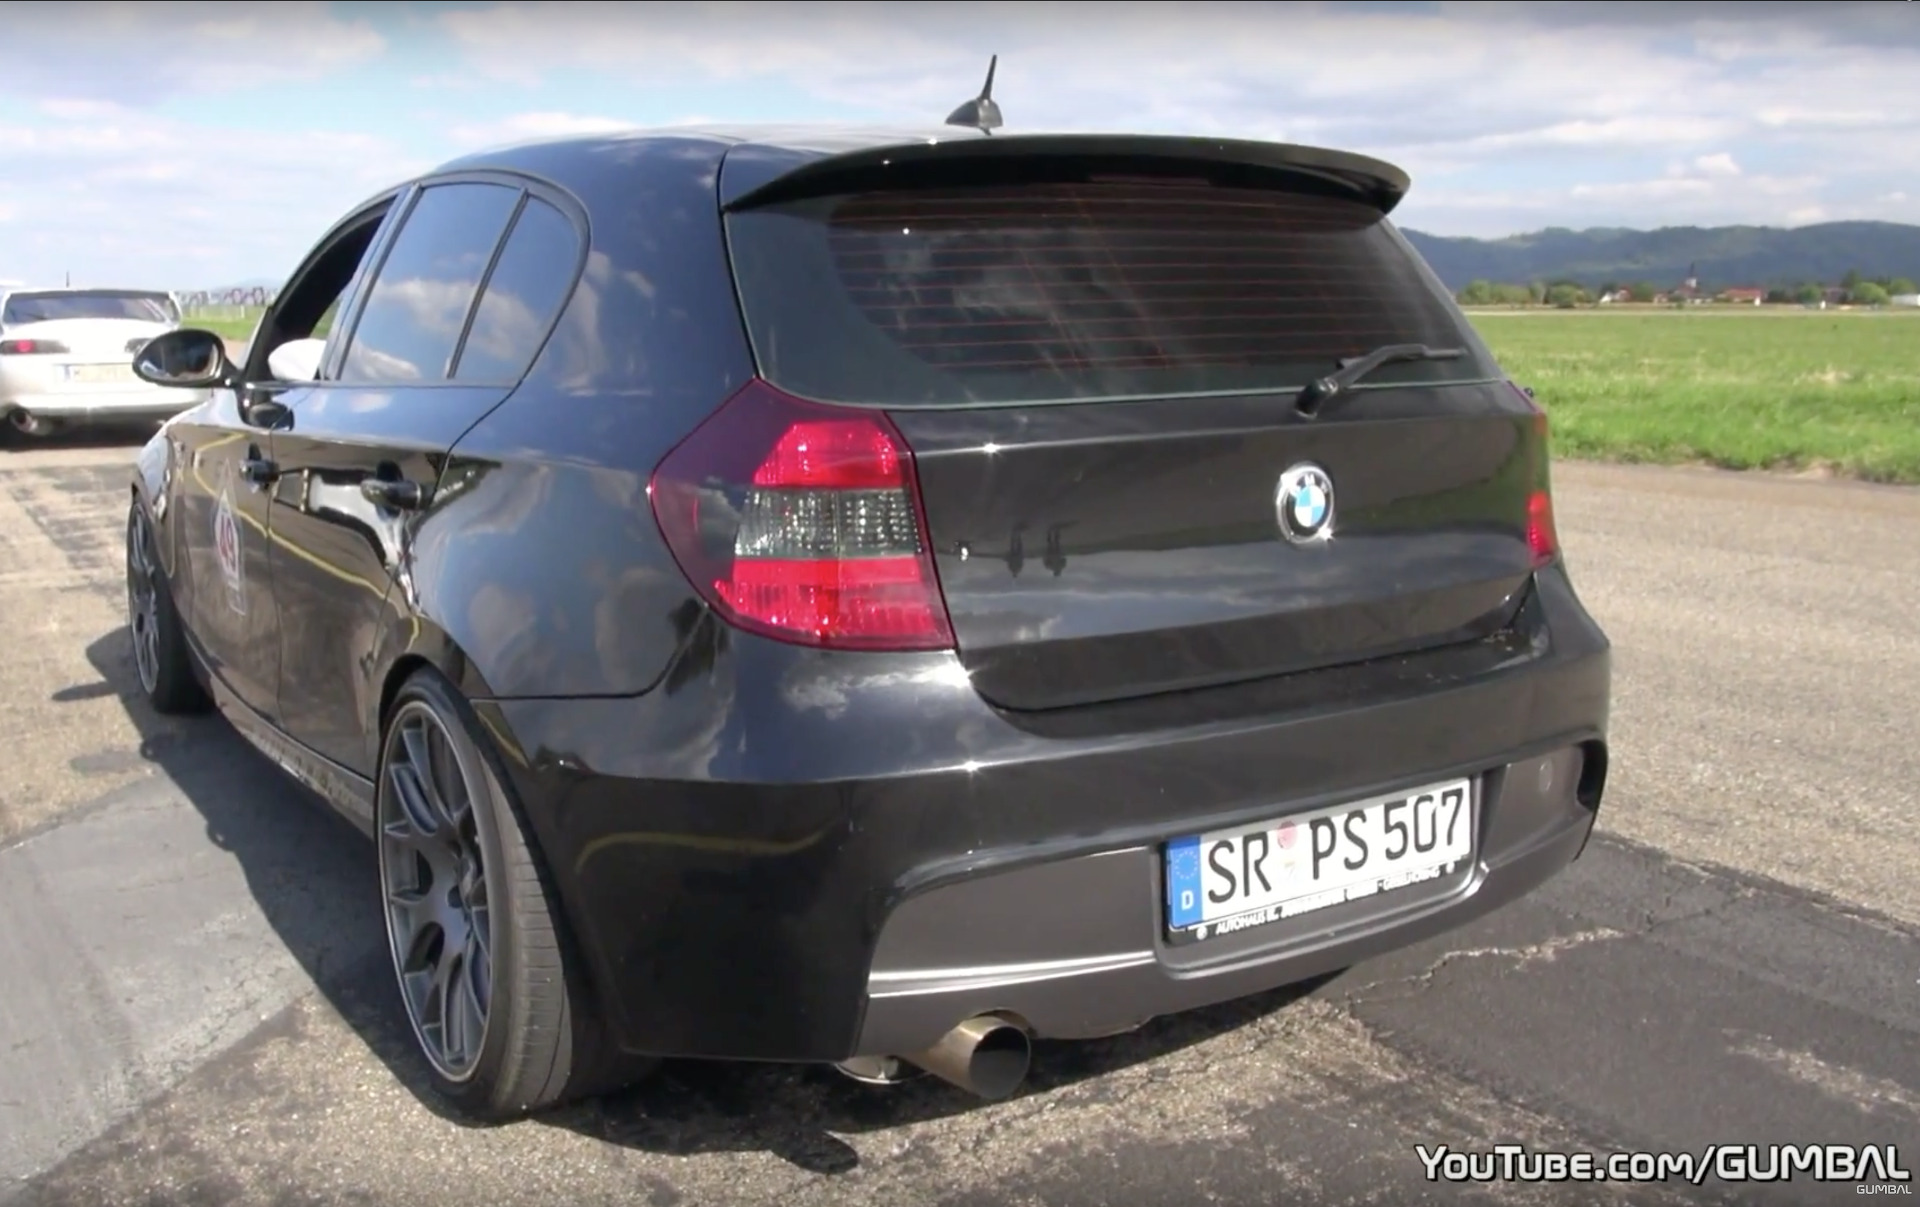 sound video bmw 150i mit v10 s85 gibt vollgas auf dragstrip. Black Bedroom Furniture Sets. Home Design Ideas